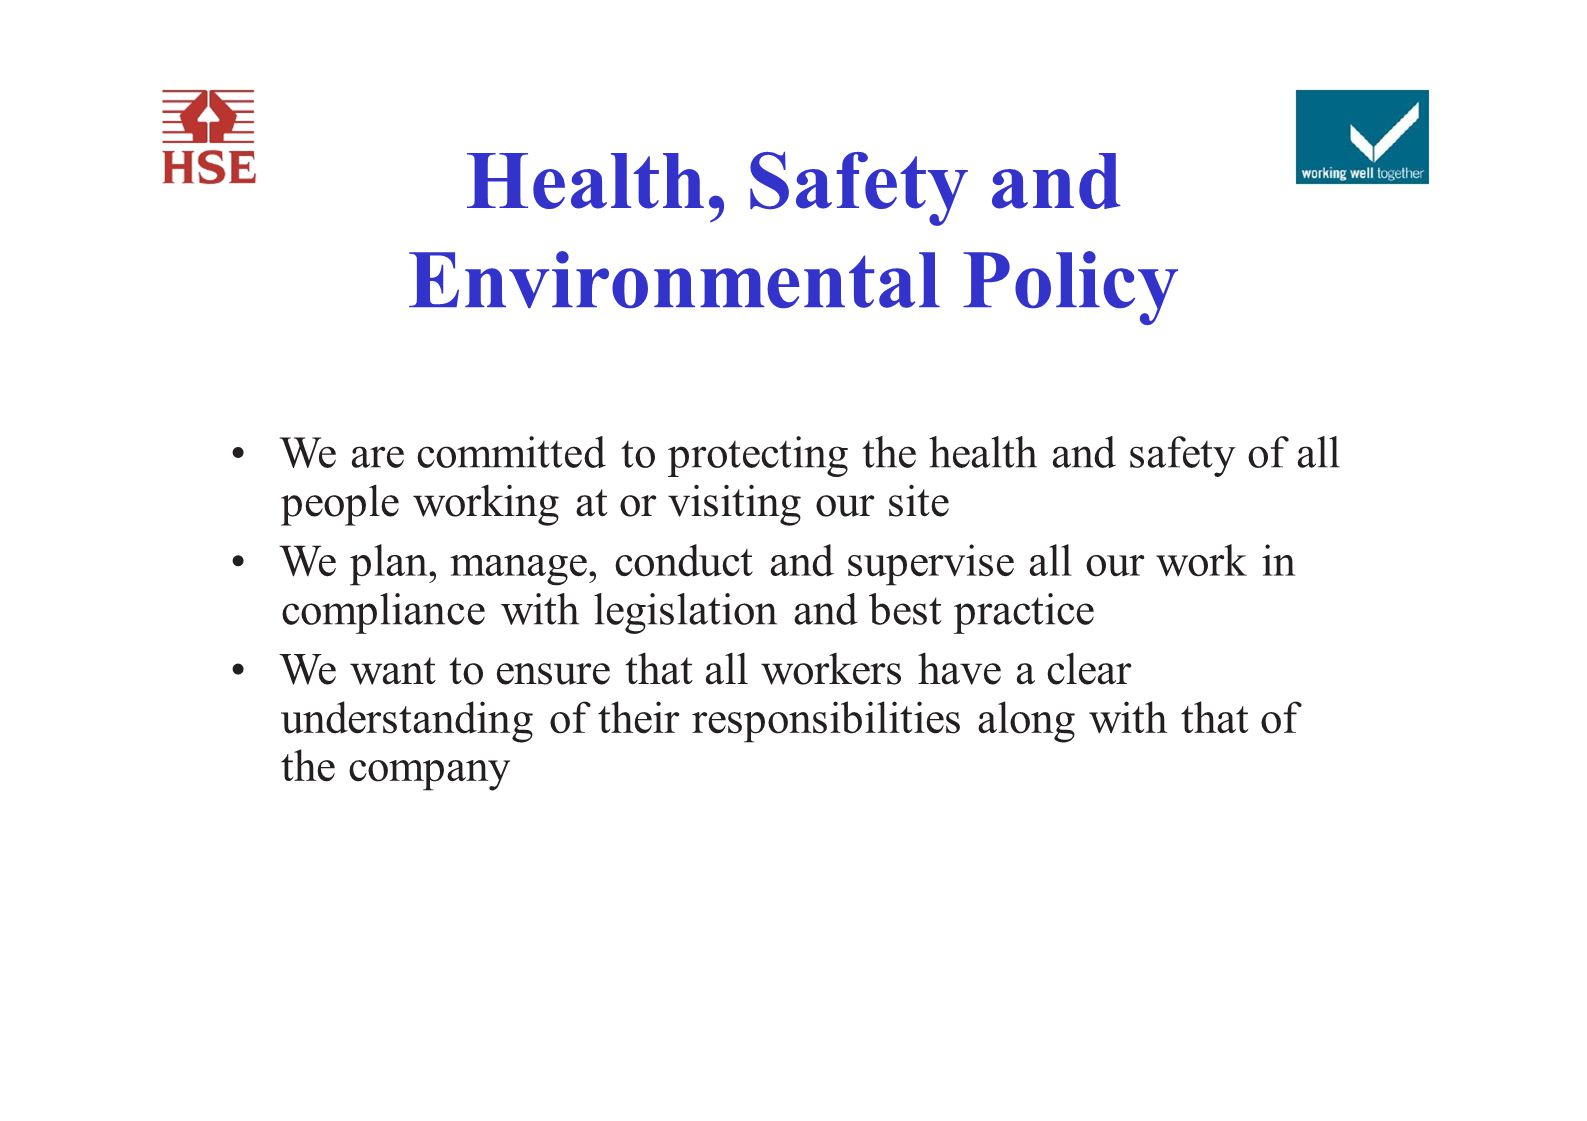 Health, Safety and Environmental Policy